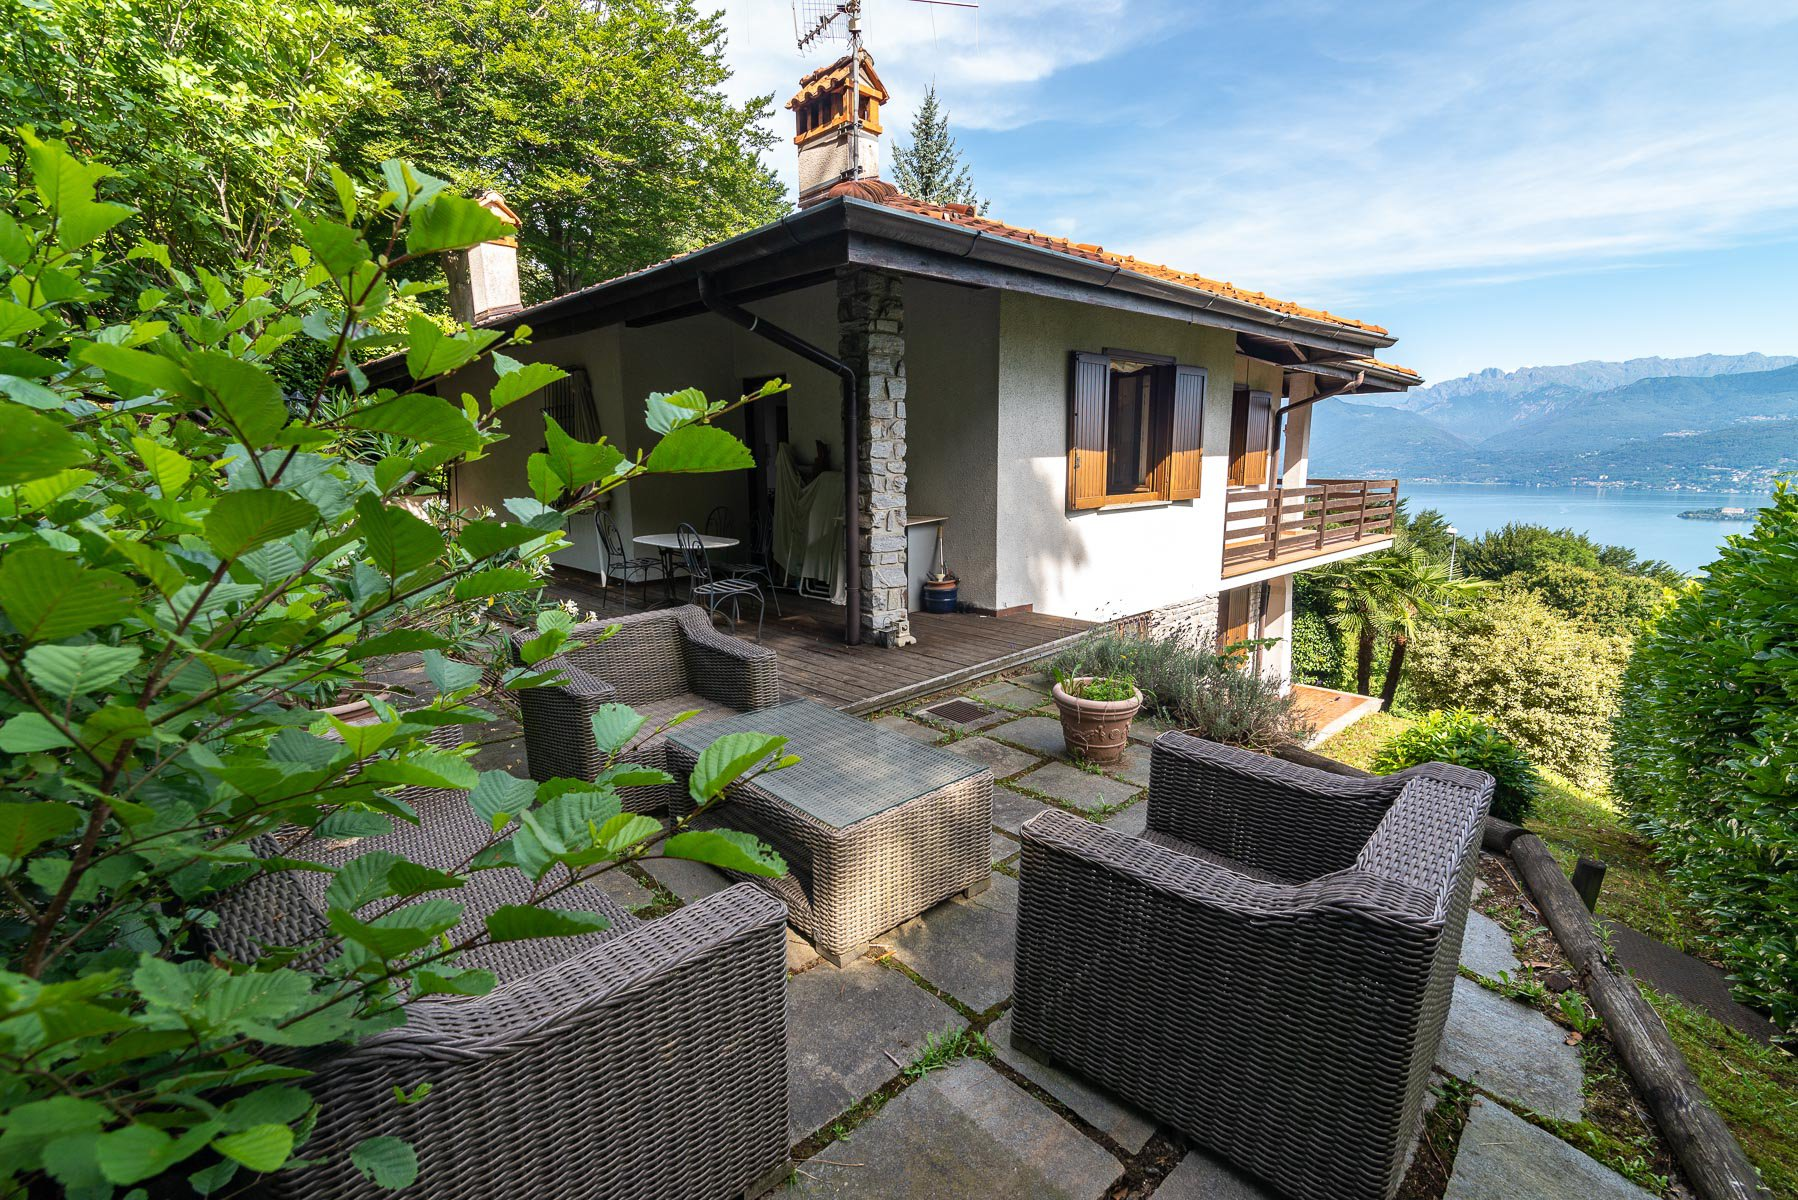 villa for sale on the hill of Stresa with lake view- external of real estate